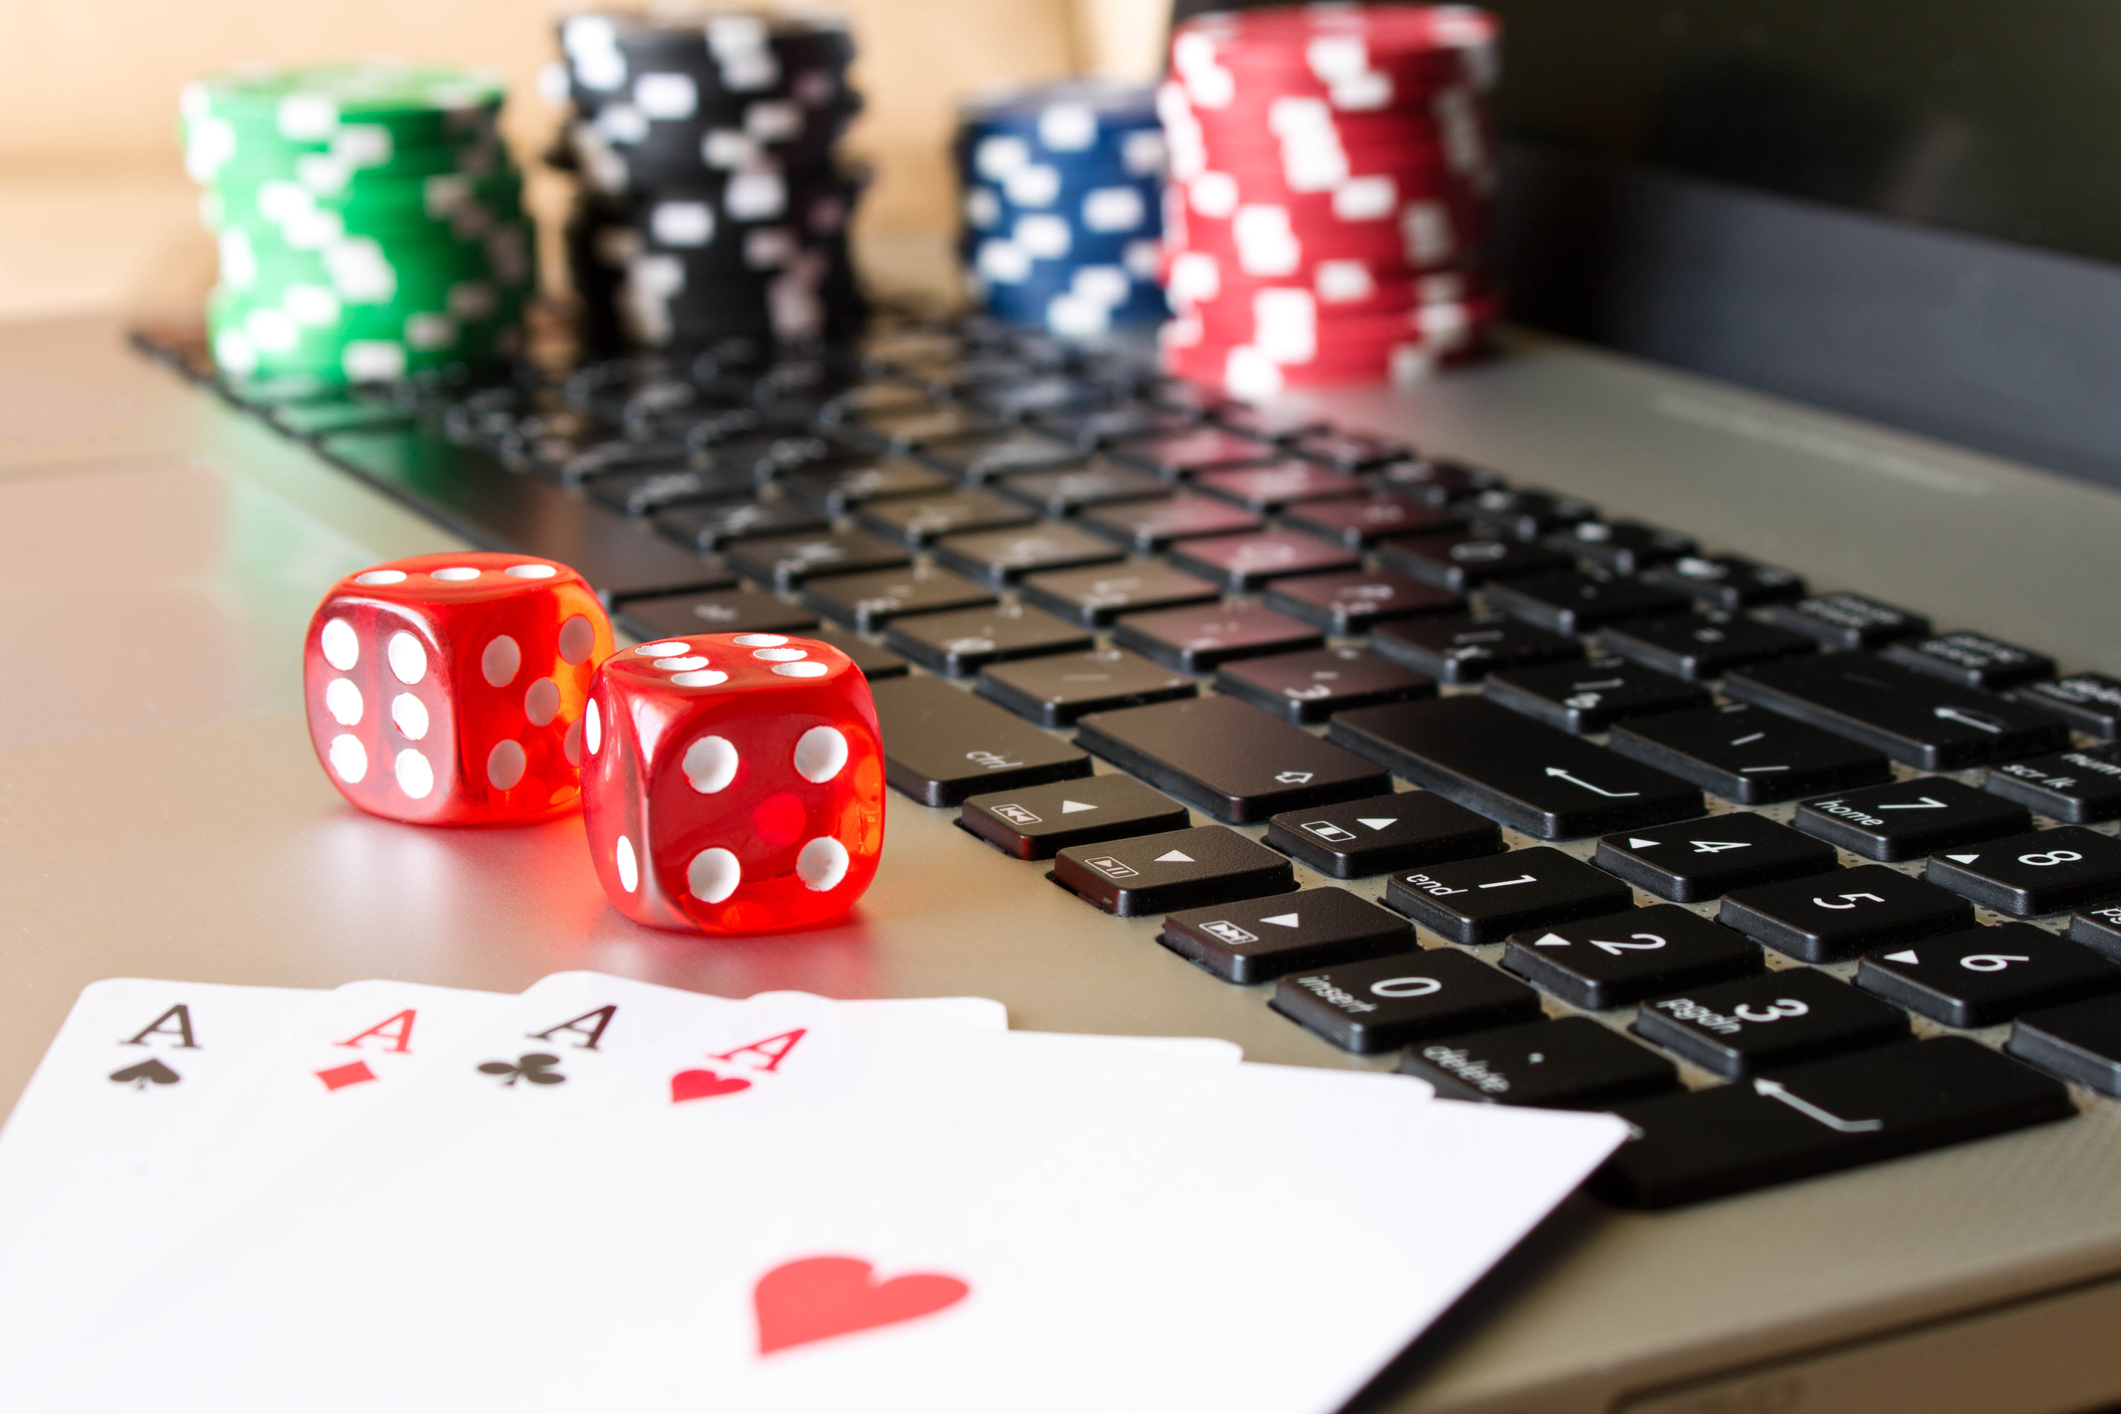 Choosing Your Online Casino During This Global Lockdown